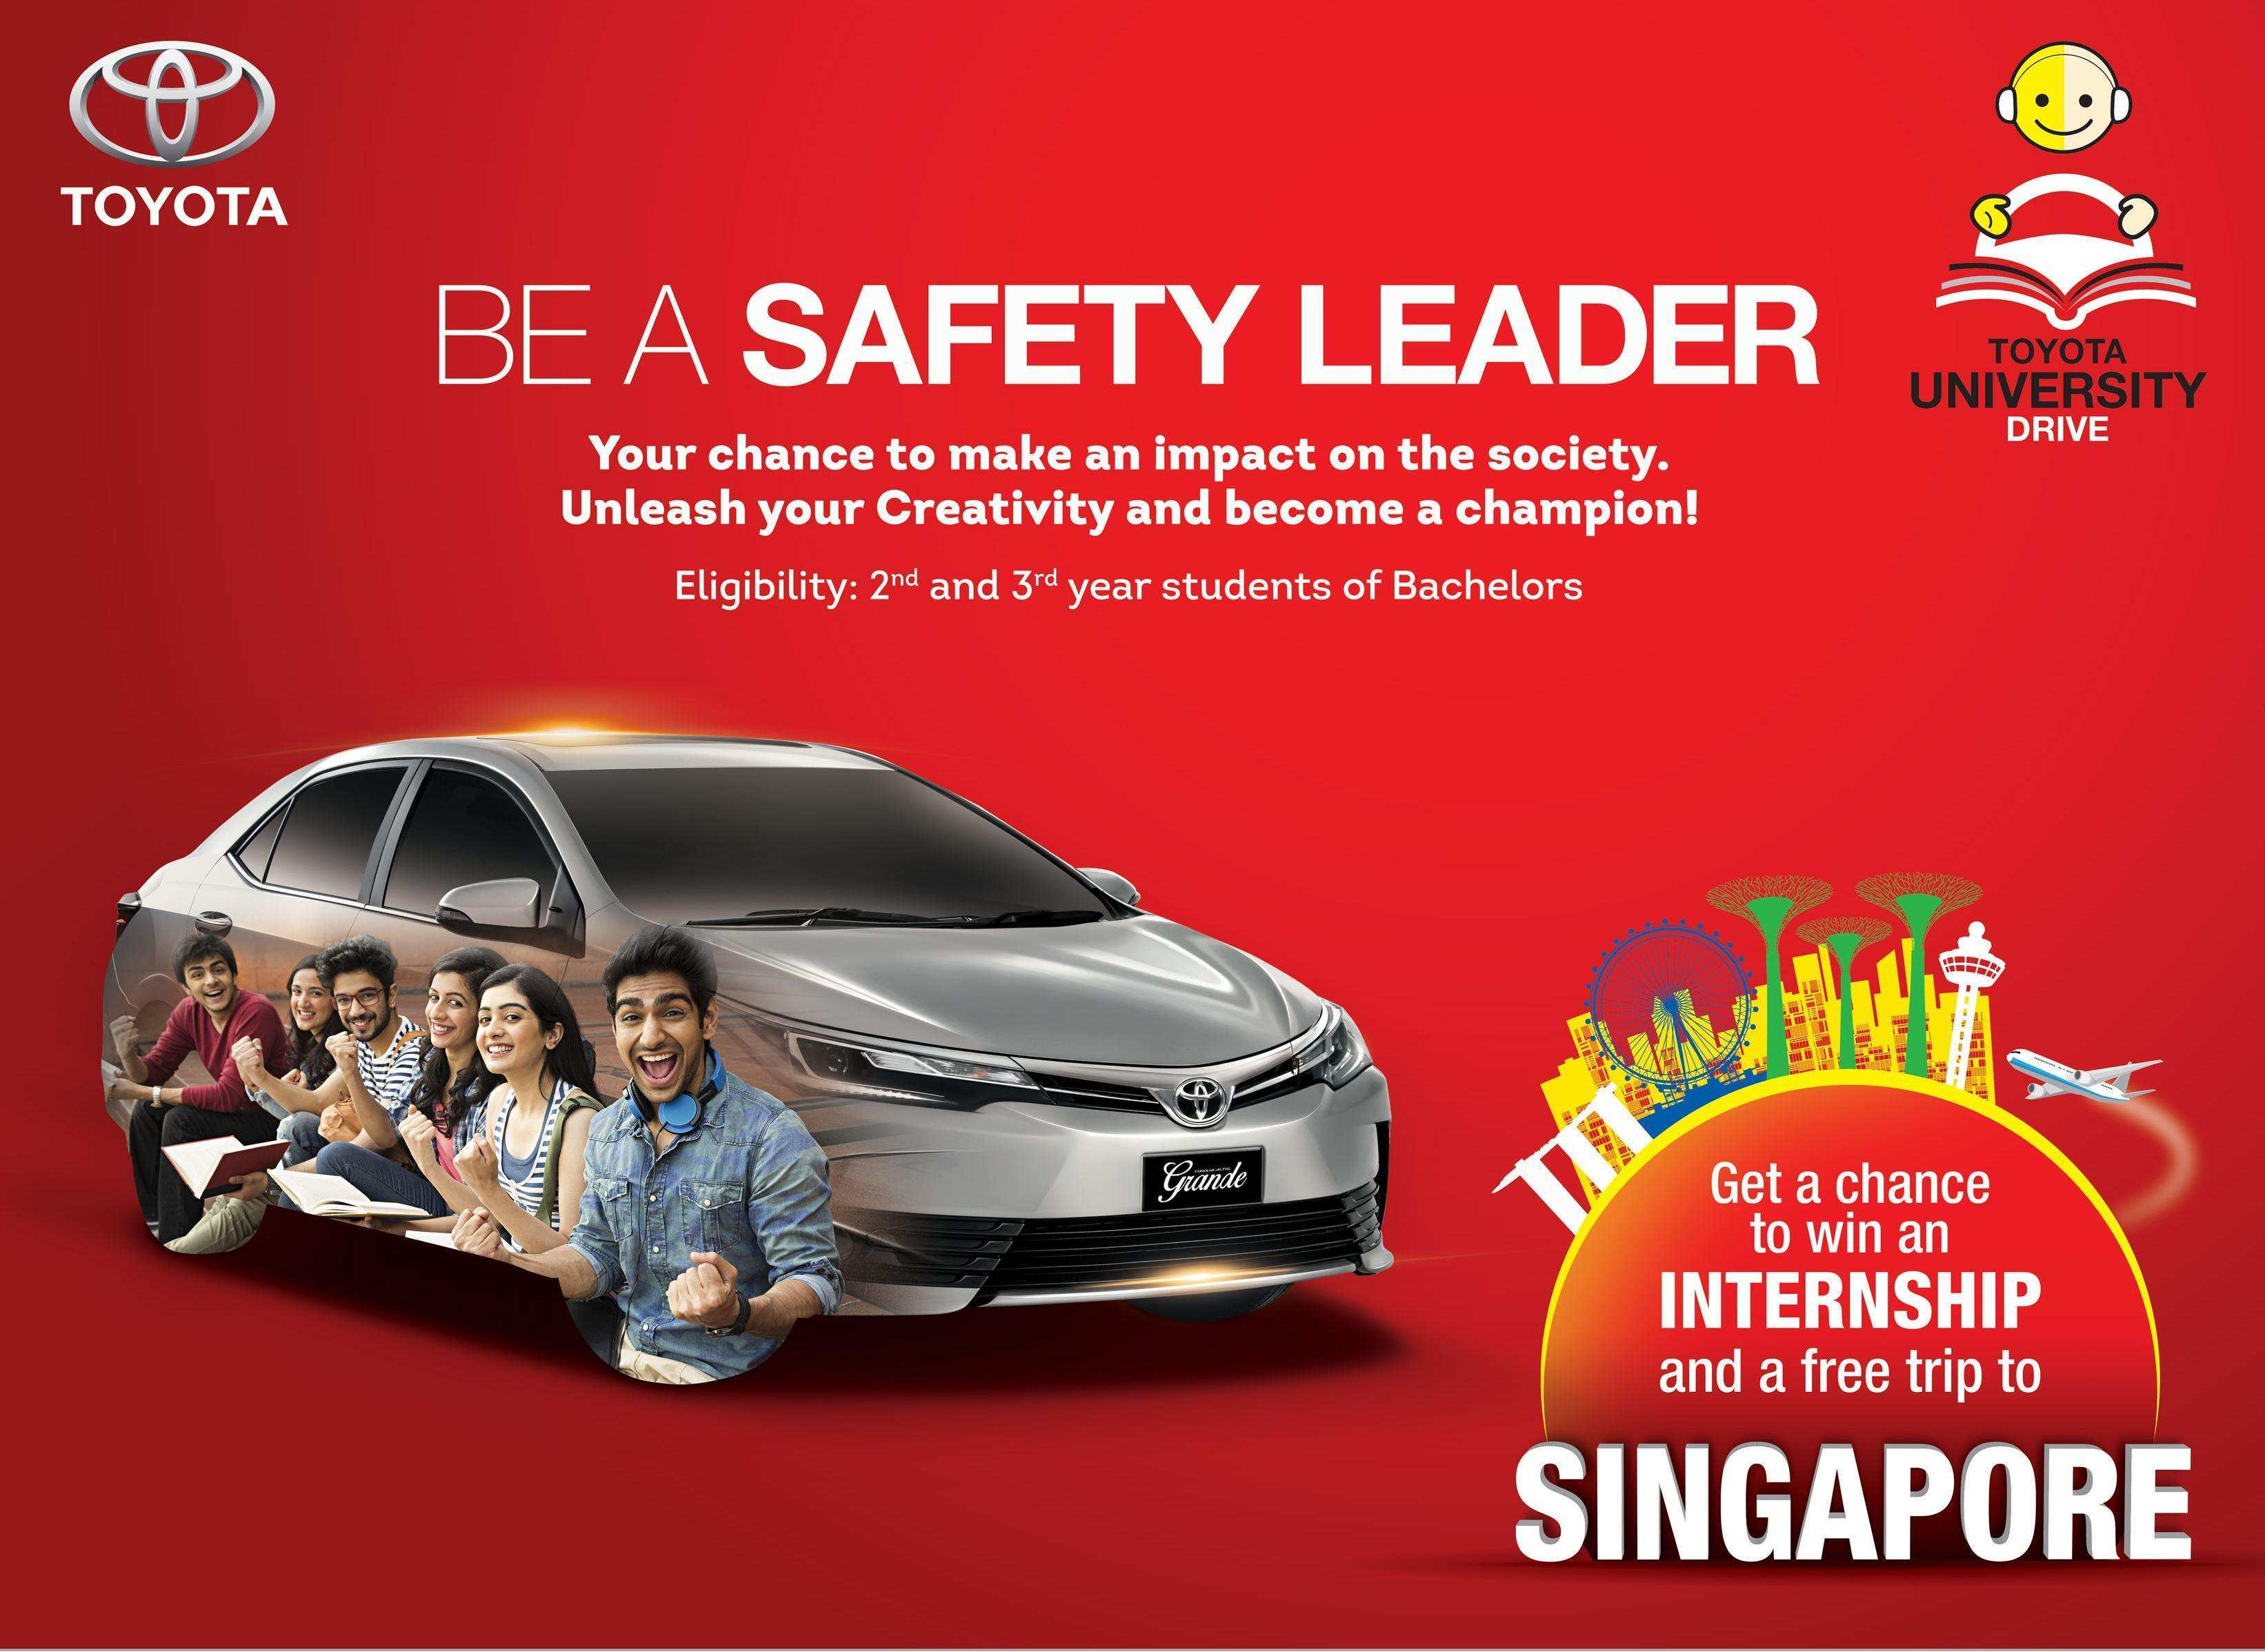 48 All New Toyota Internship 2019 Price And Review